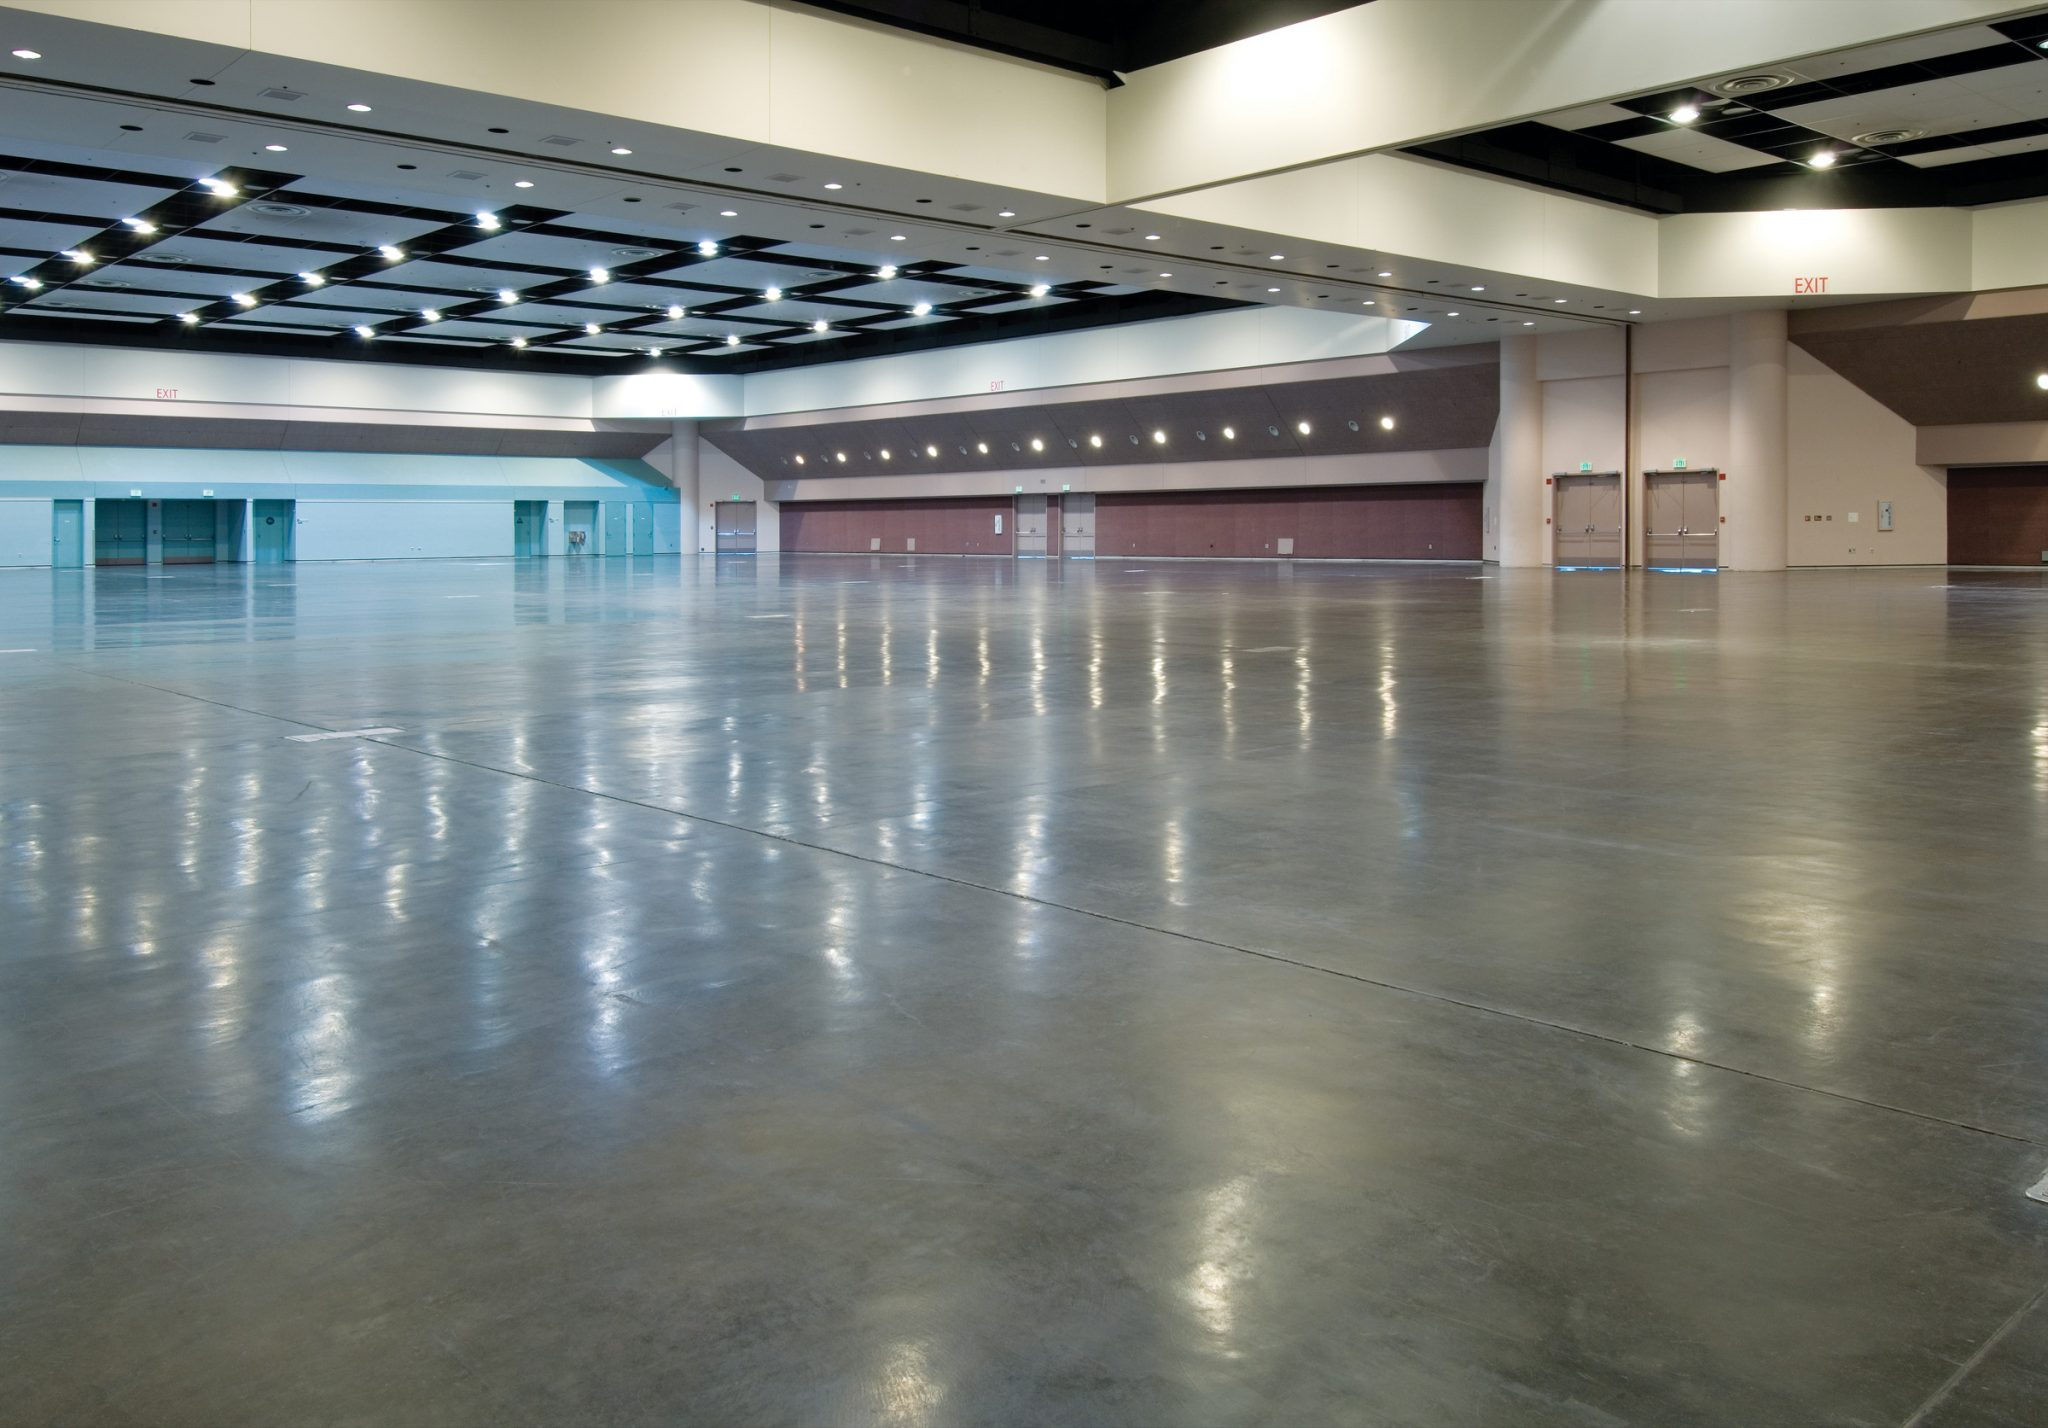 Santa Clara Convention Center Image 4 – Visit Santa Clara, Ca For San Jose Convention Calender